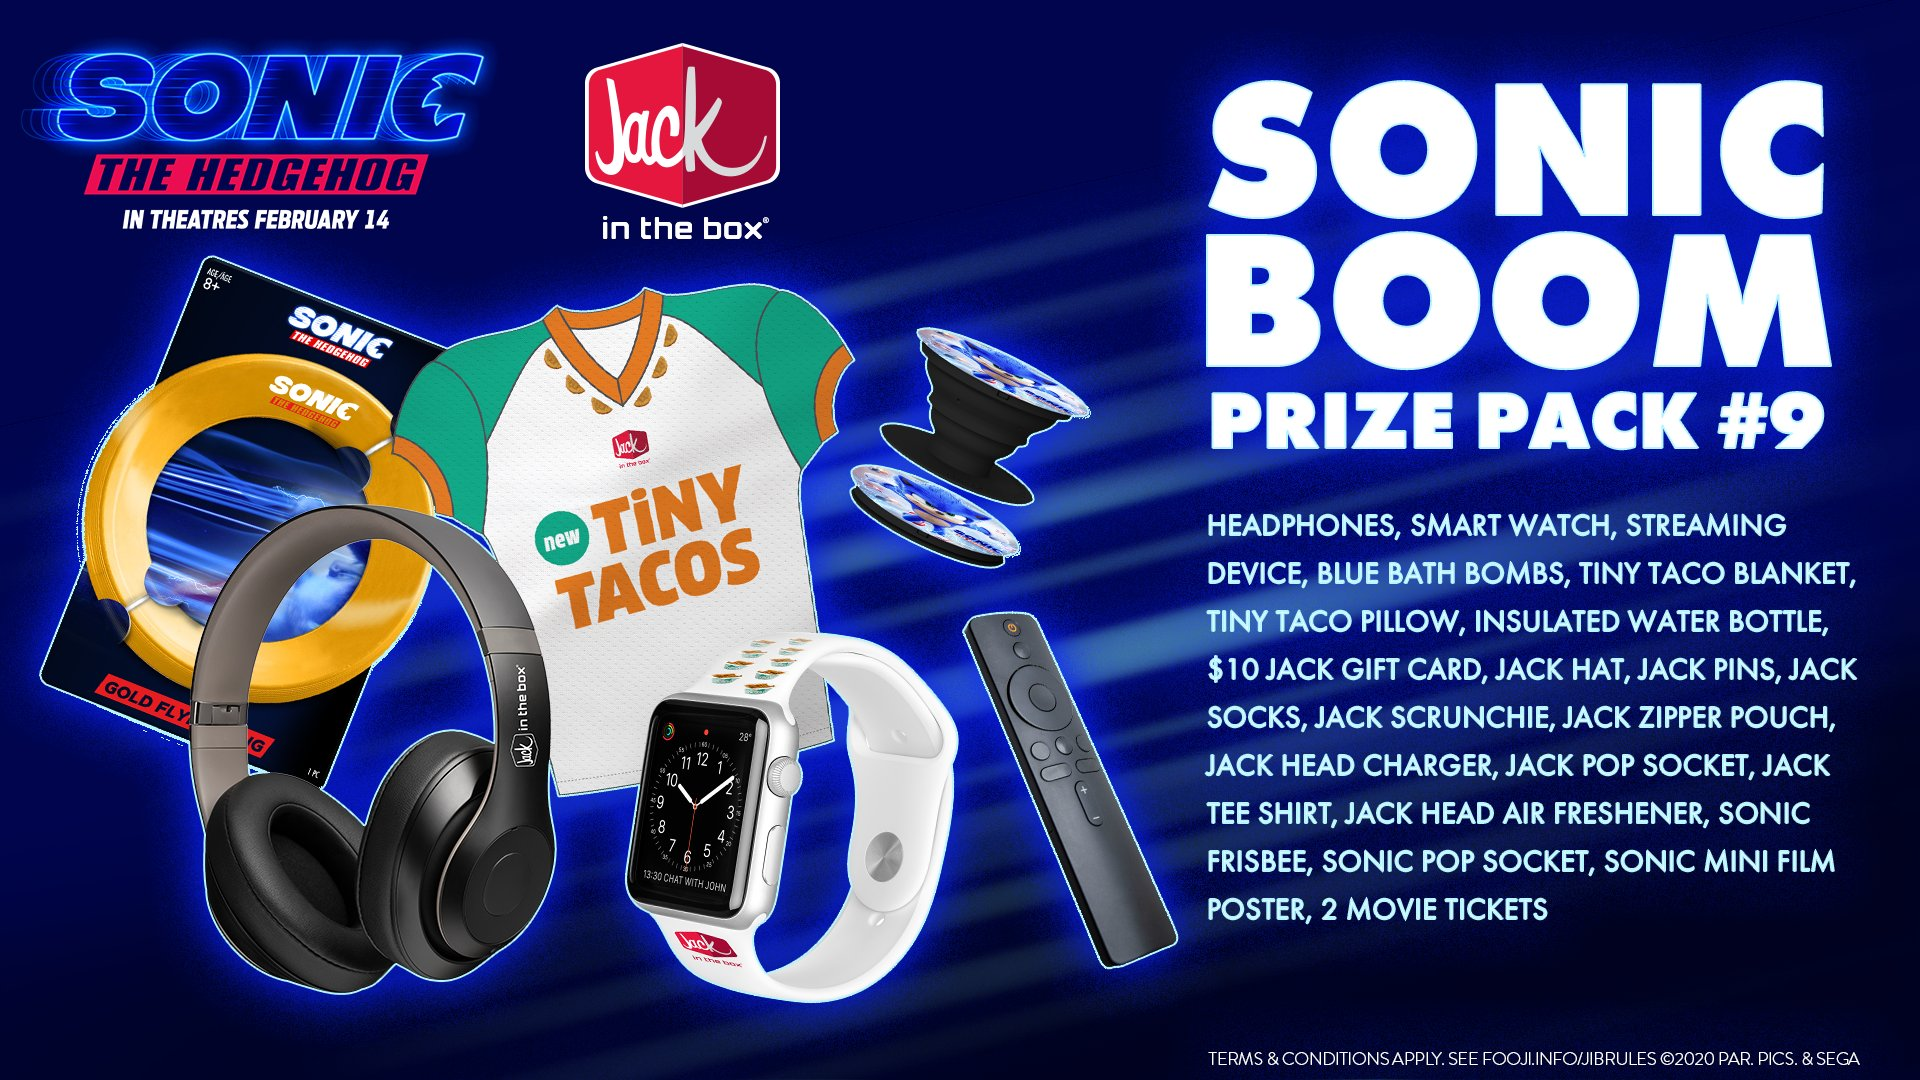 Jack In The Box On Twitter We Re About Halfway Through The Prizes Will Only Get Bigger As The Game Goes On Tiny Tacos Will Stay The Same Size Though Tweet Jackstinytacos